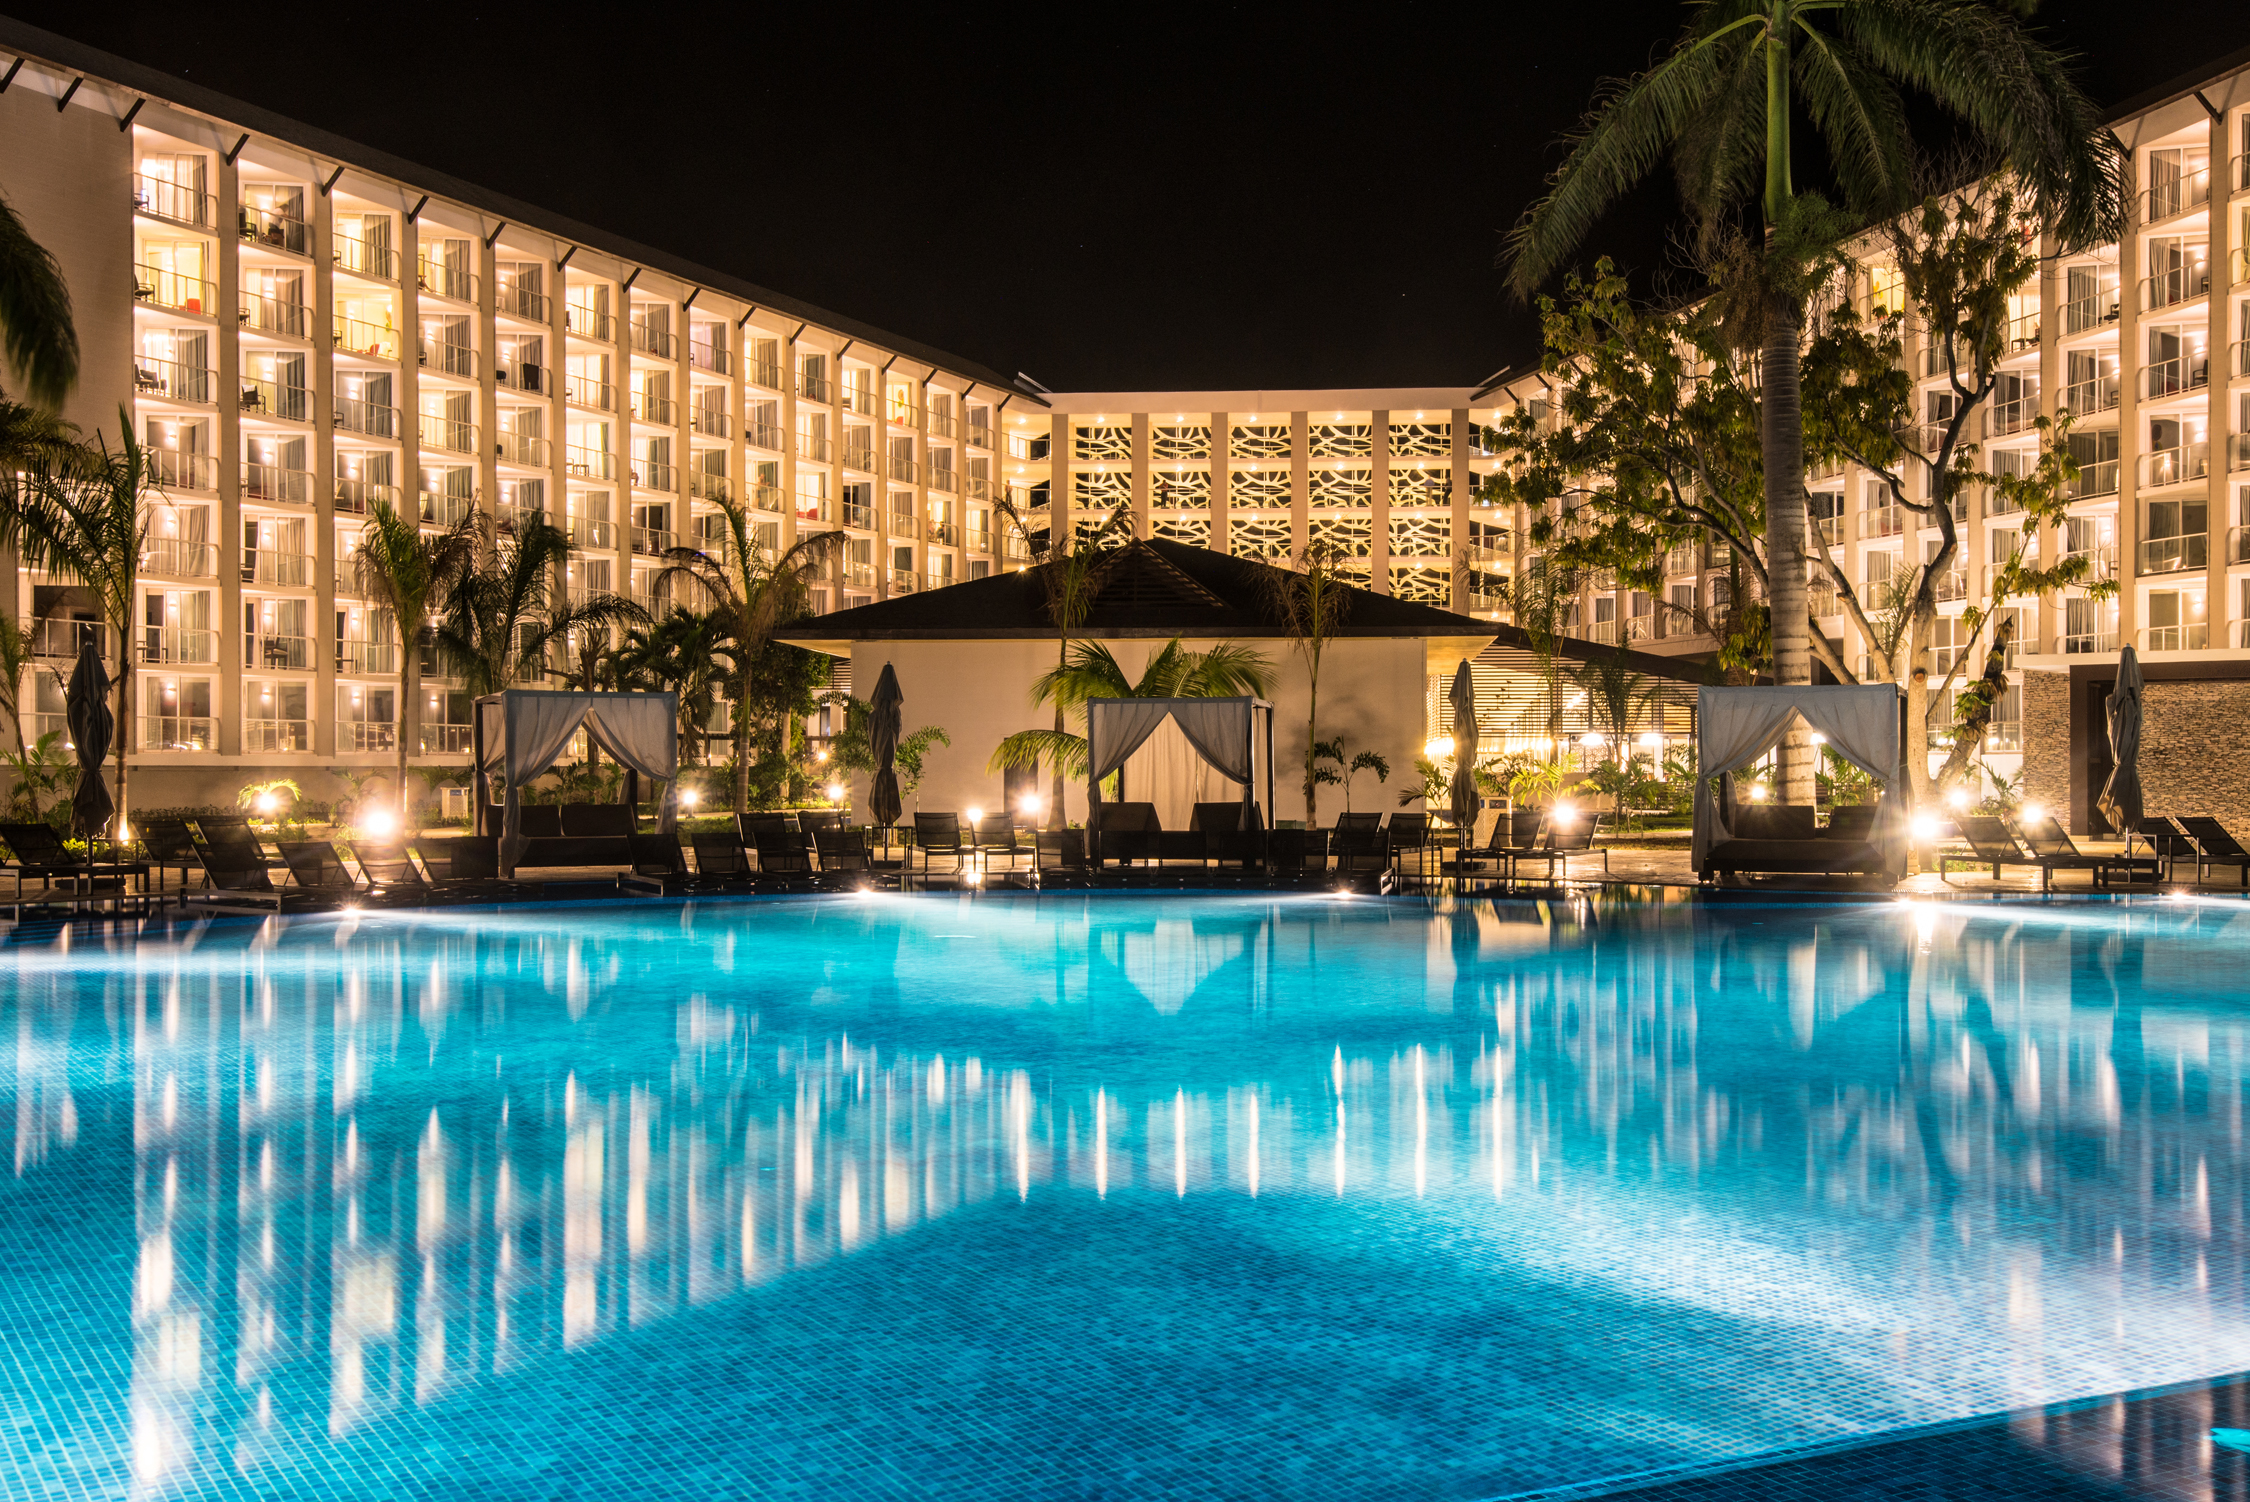 Royal white sands montego bay pictures SmarterTravel - The Best Trips Start Here